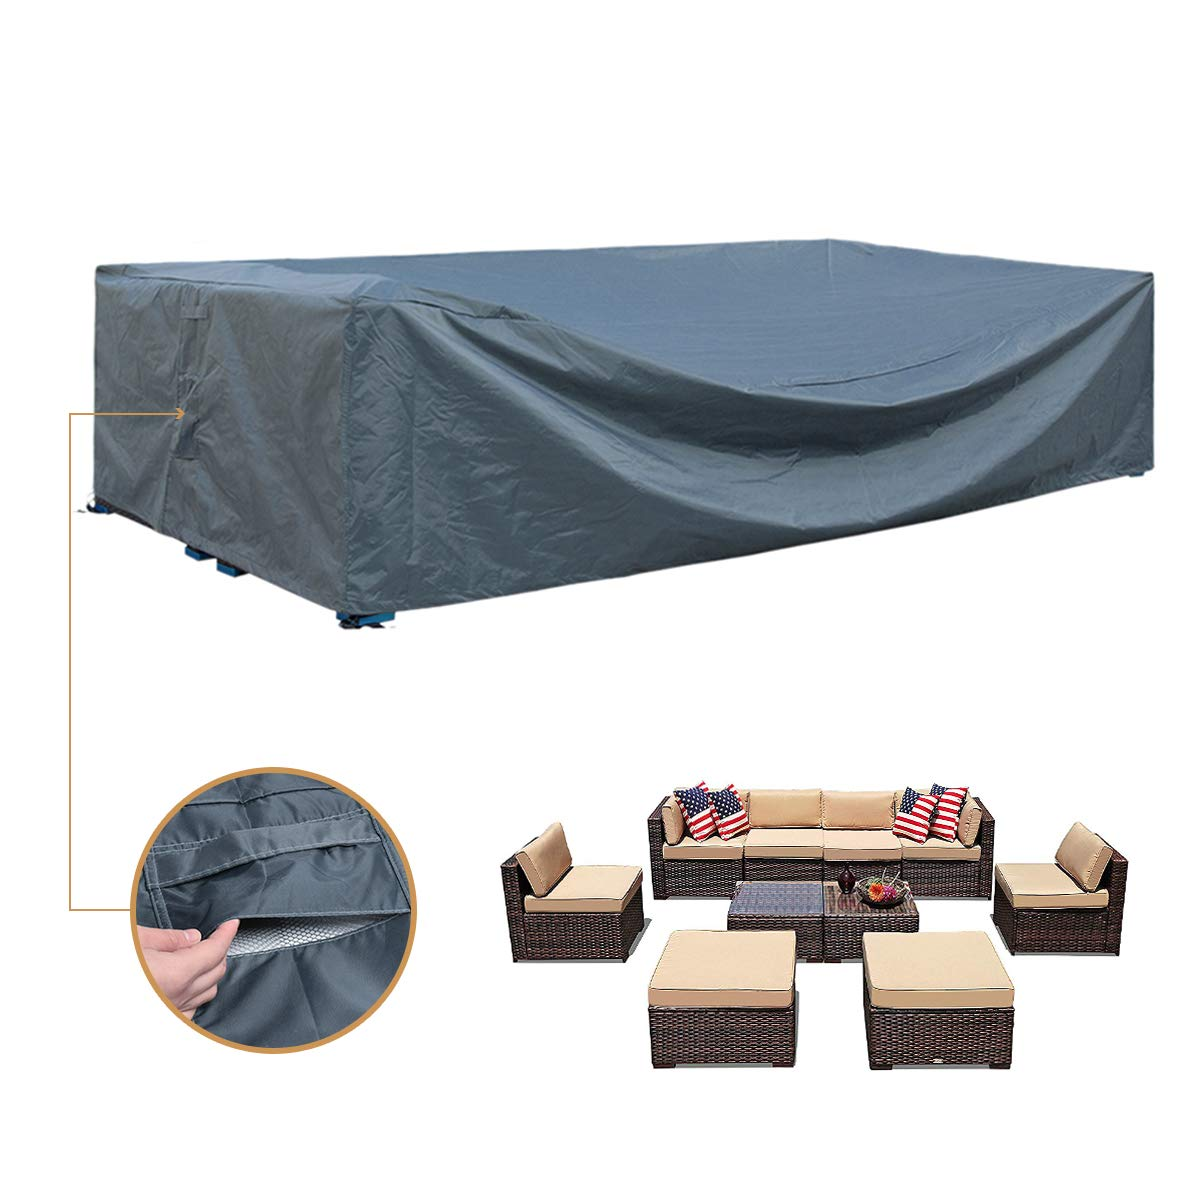 Patio Furniture Set Covers Waterproof Outdoor Sectional Conversation Loveseat Sofa Set Covers Waterproof Patio Table Covers Heavy Duty 128'' L x 83'' W x 28'' H